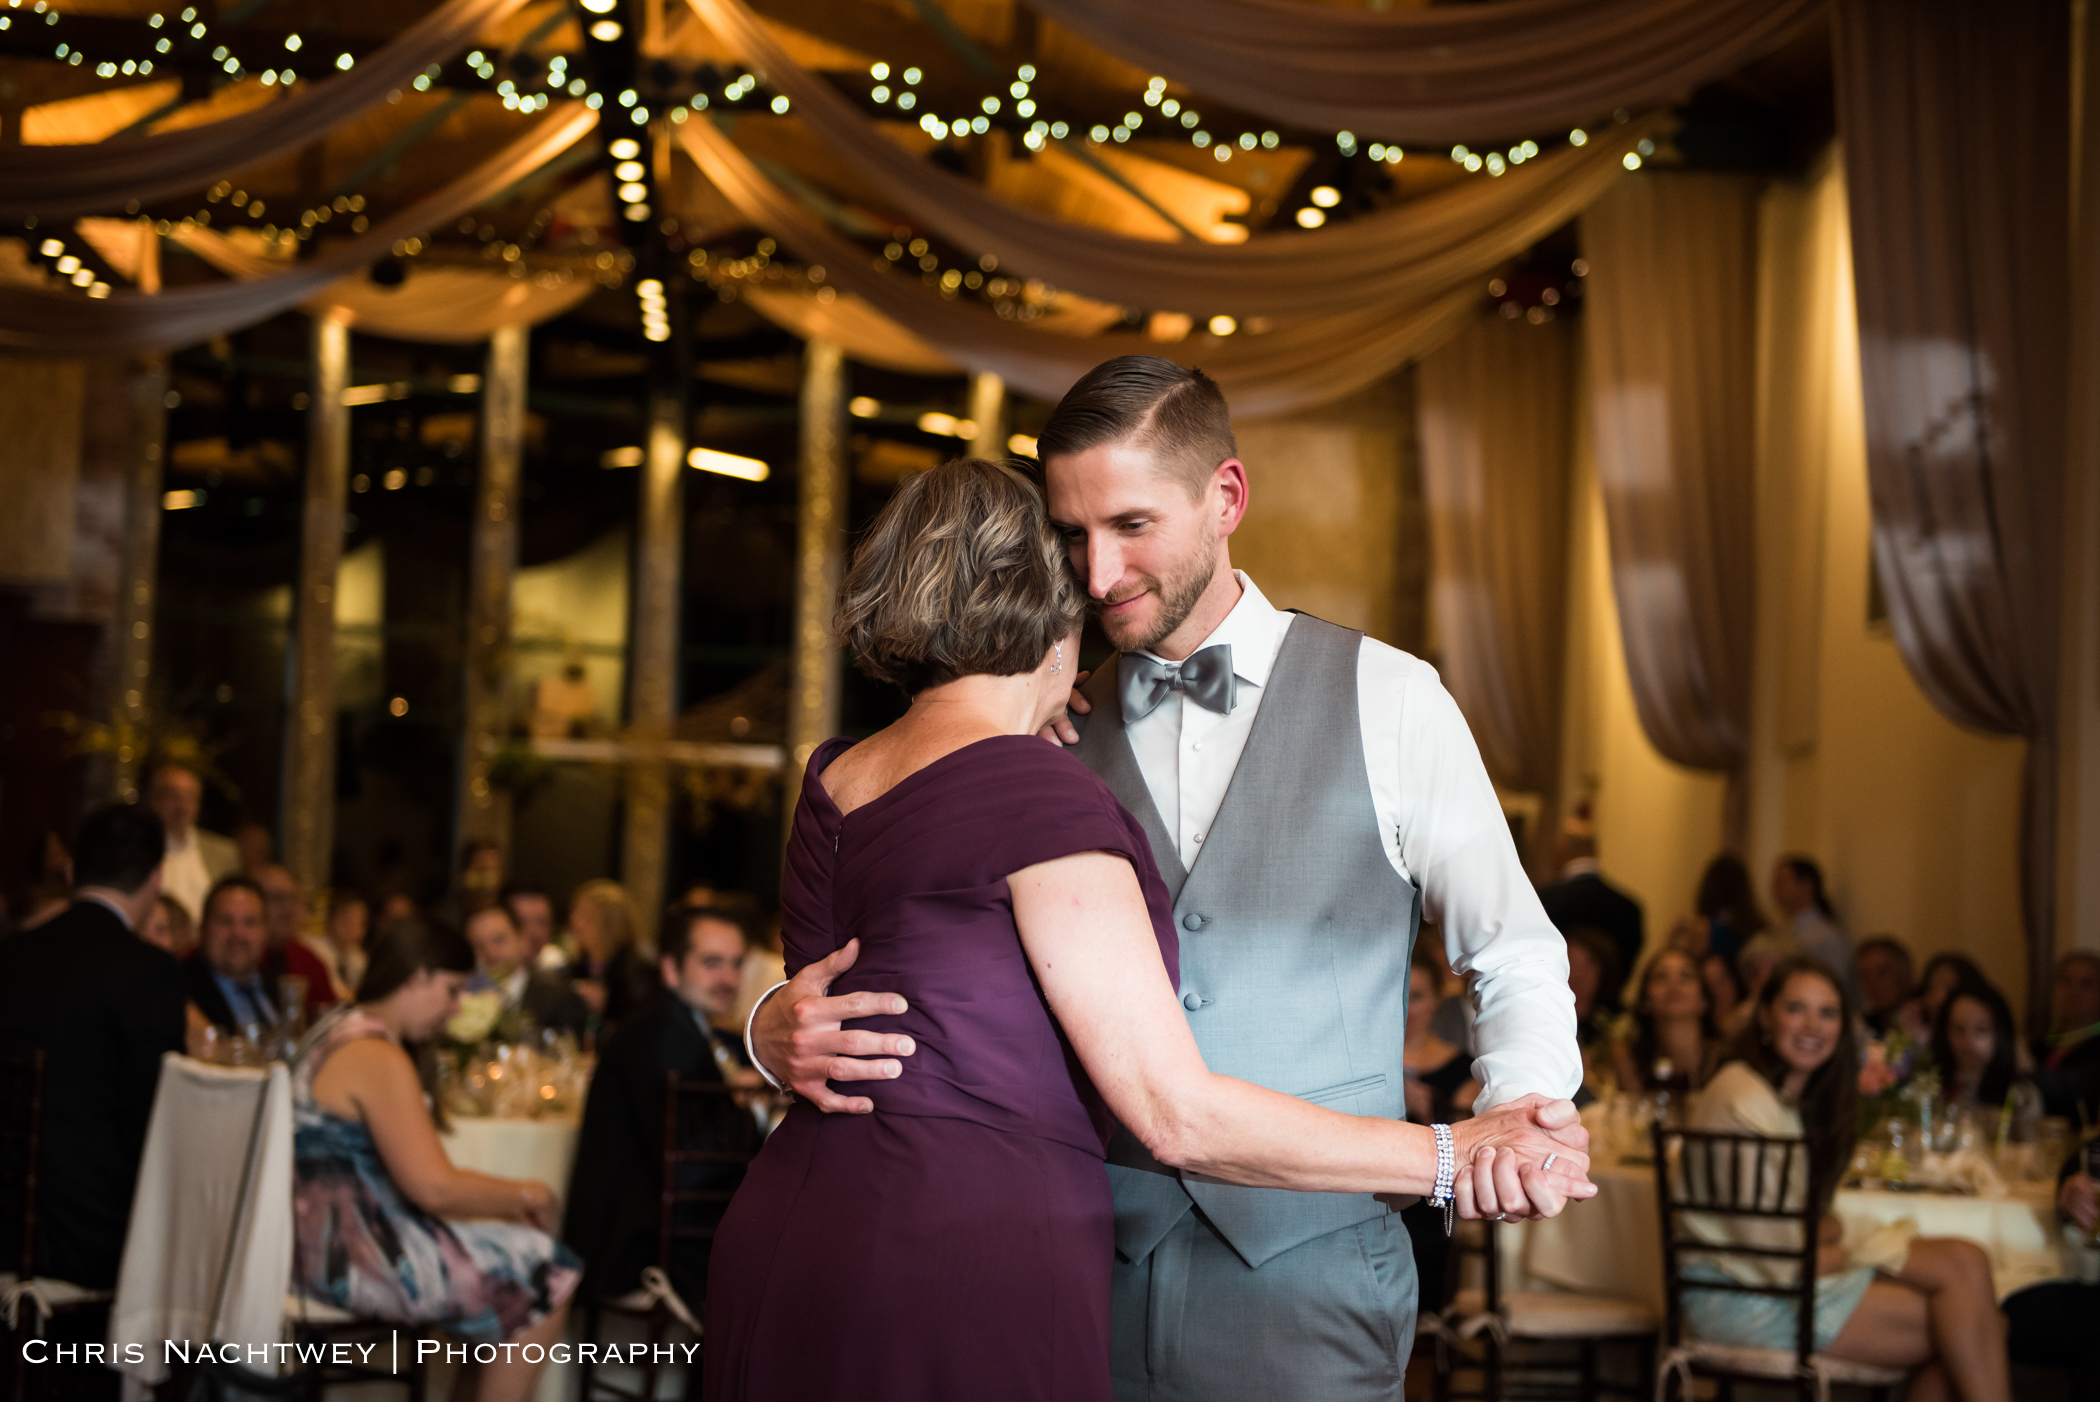 pond-house-cafe-wedding-hartford-ct-photos-chris-nachtwey-photography-2017-jackie-matt-42.jpg